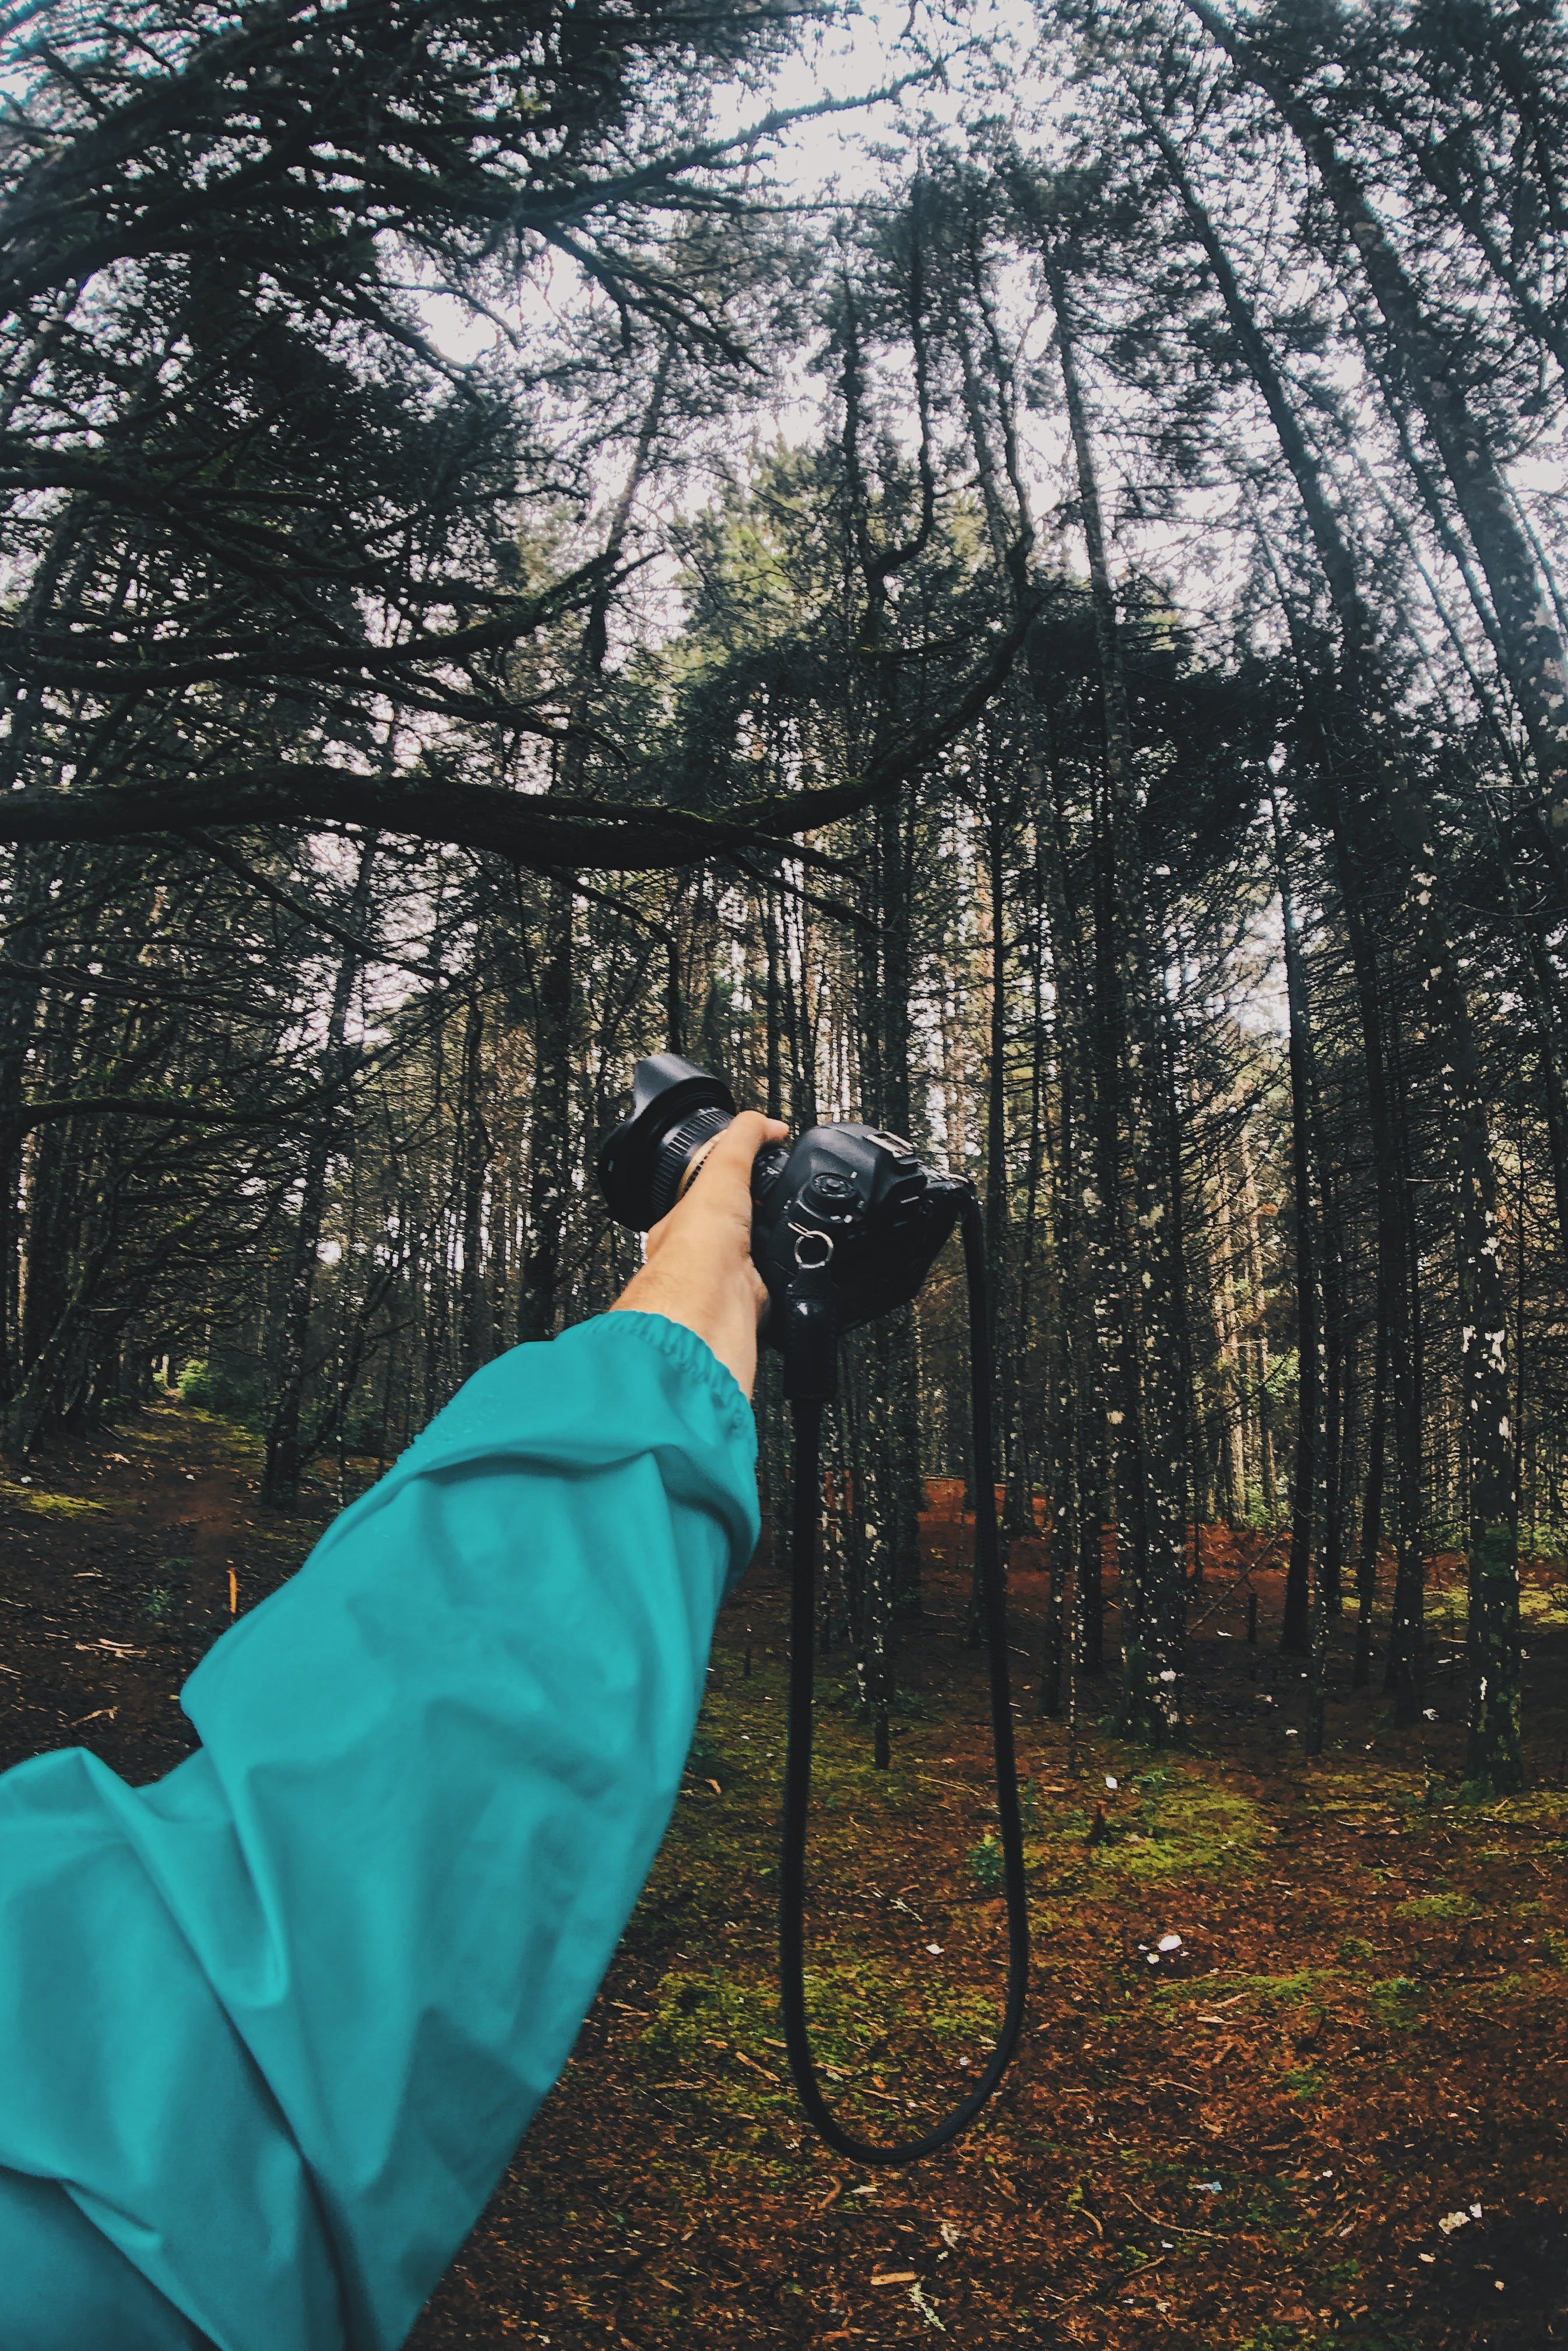 Man Holding a Camera in the Forest